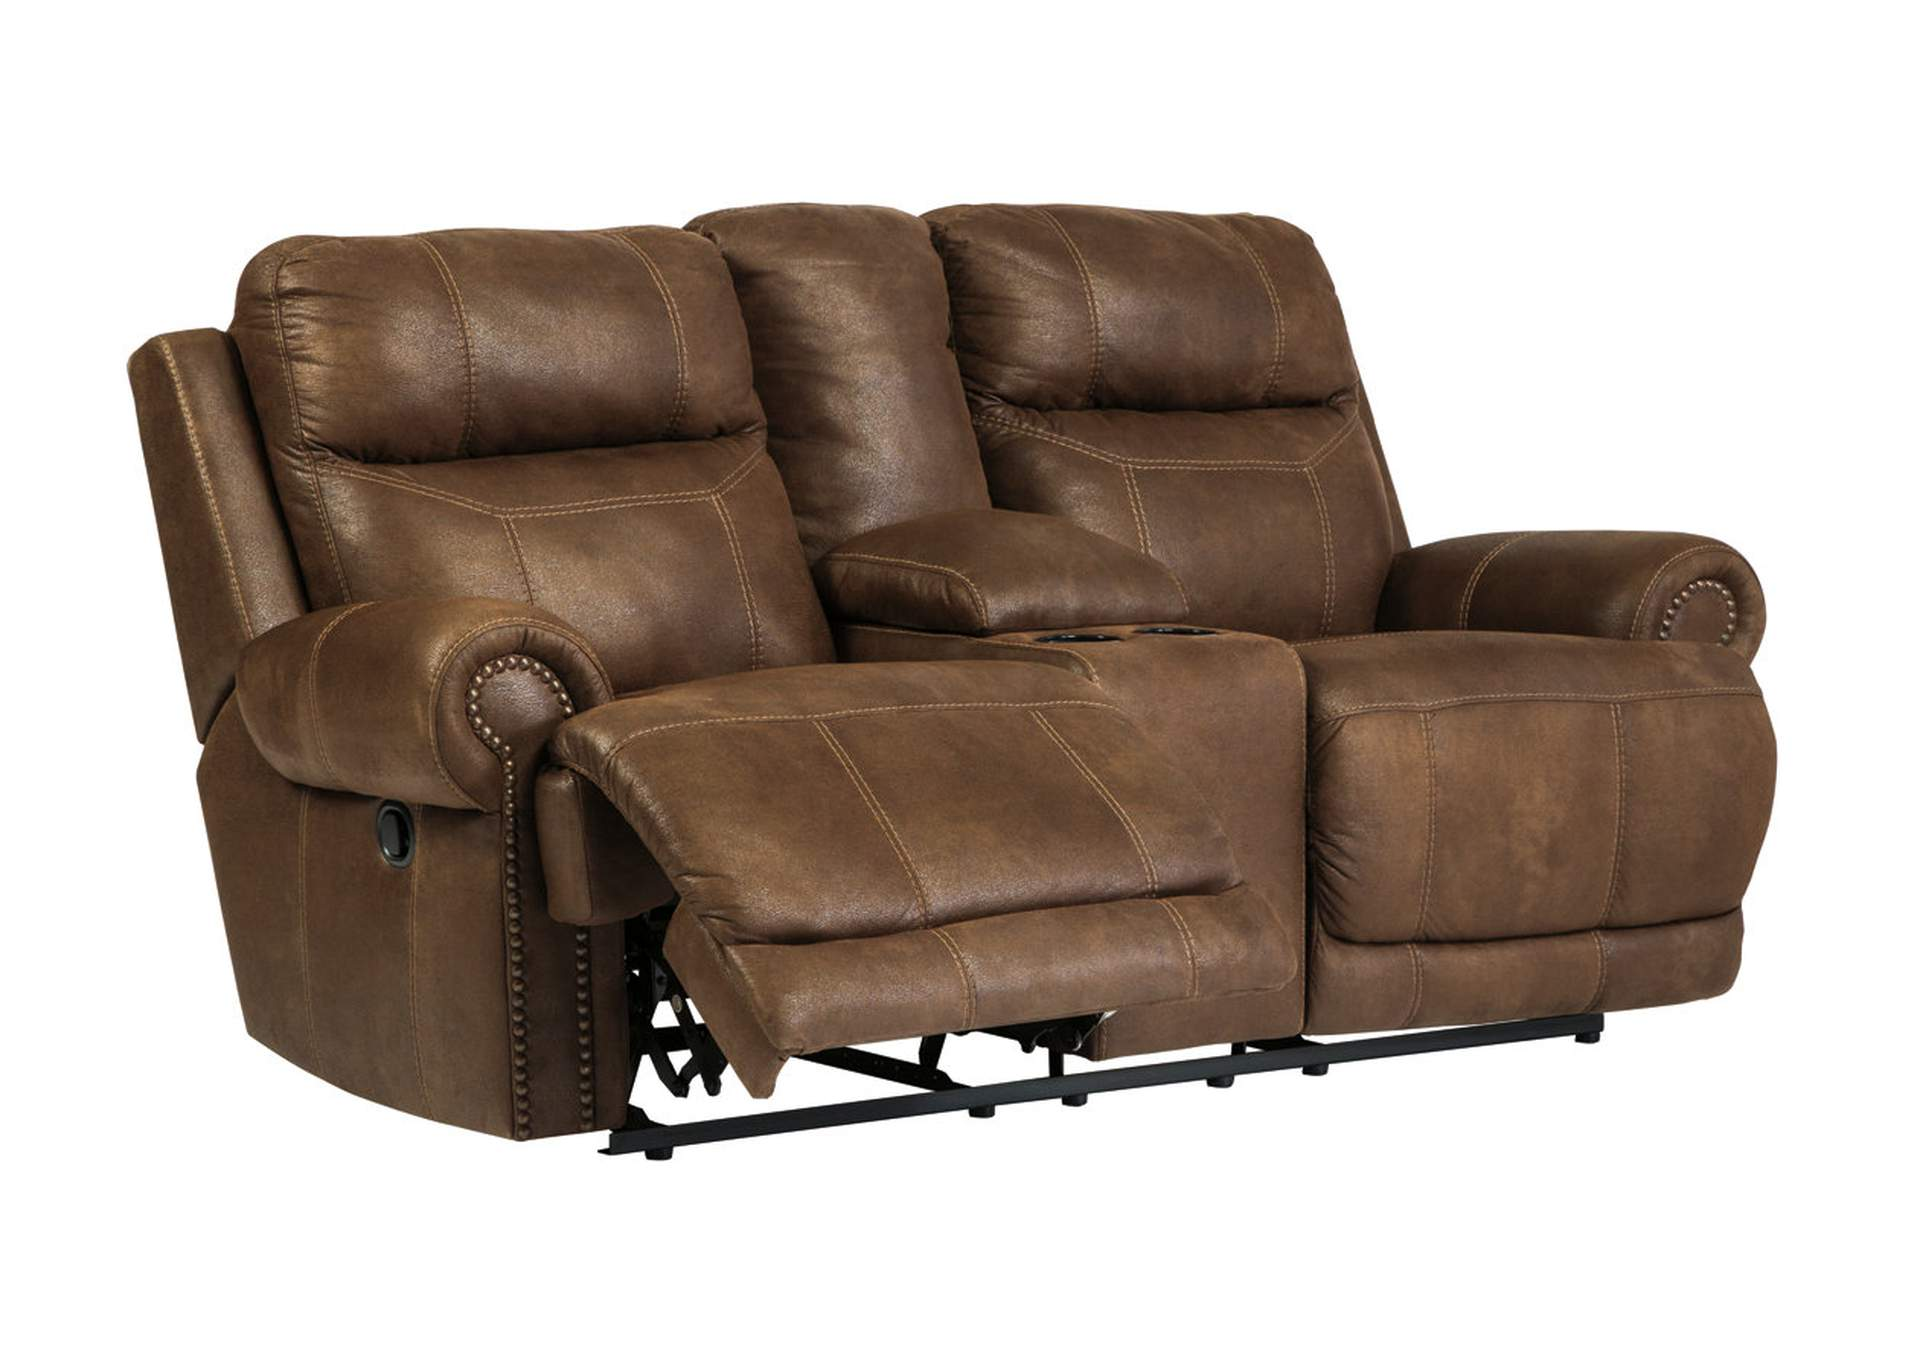 Oak Furniture Liquidators Austere Brown Double Reclining Power Loveseat W Console